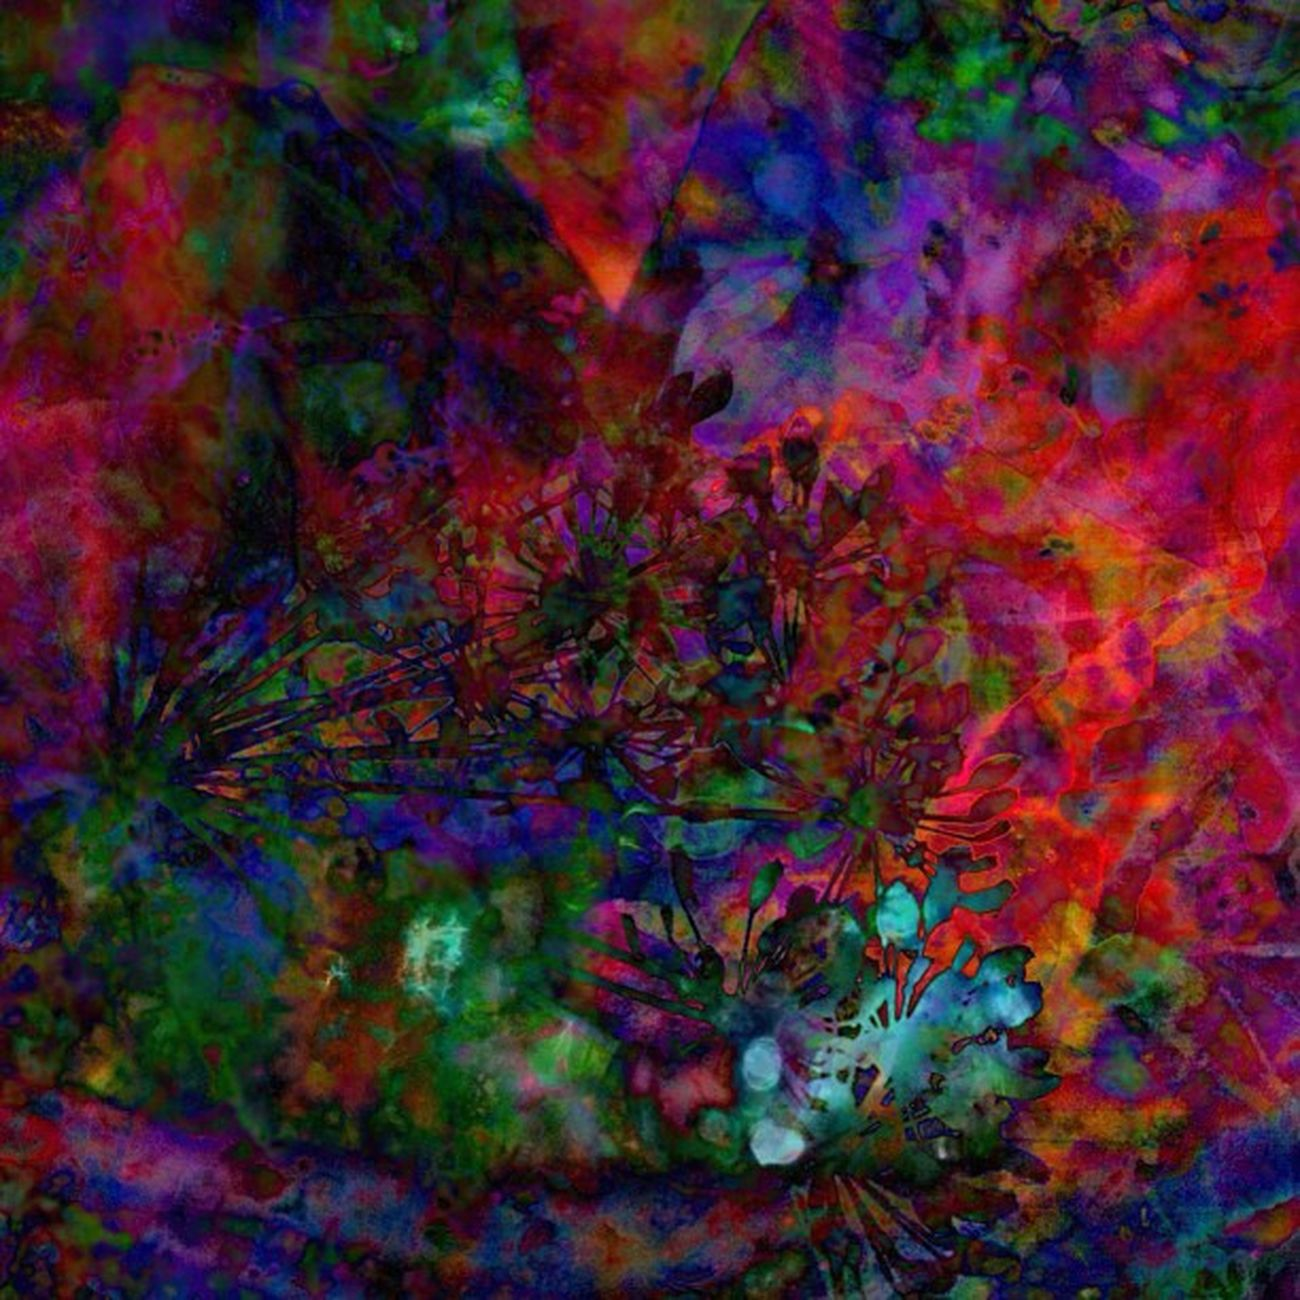 Color Storm (1 of 3) Instaabstract Ig_captures Abstracto Happycolortrip All_shots Coloronroids StayABSTRACT Dhexpose Abstractart Ace_ Gang_family Deadlydivas Editjunky Ig_one Amselcom Icatching Mobileartistry Femme_elite Instauno Weareinheaven Igsg You_nique_edits Bd Mi55flowerz Abstracters_anonymous Edit_fever Abstract_buff Abstractobsession